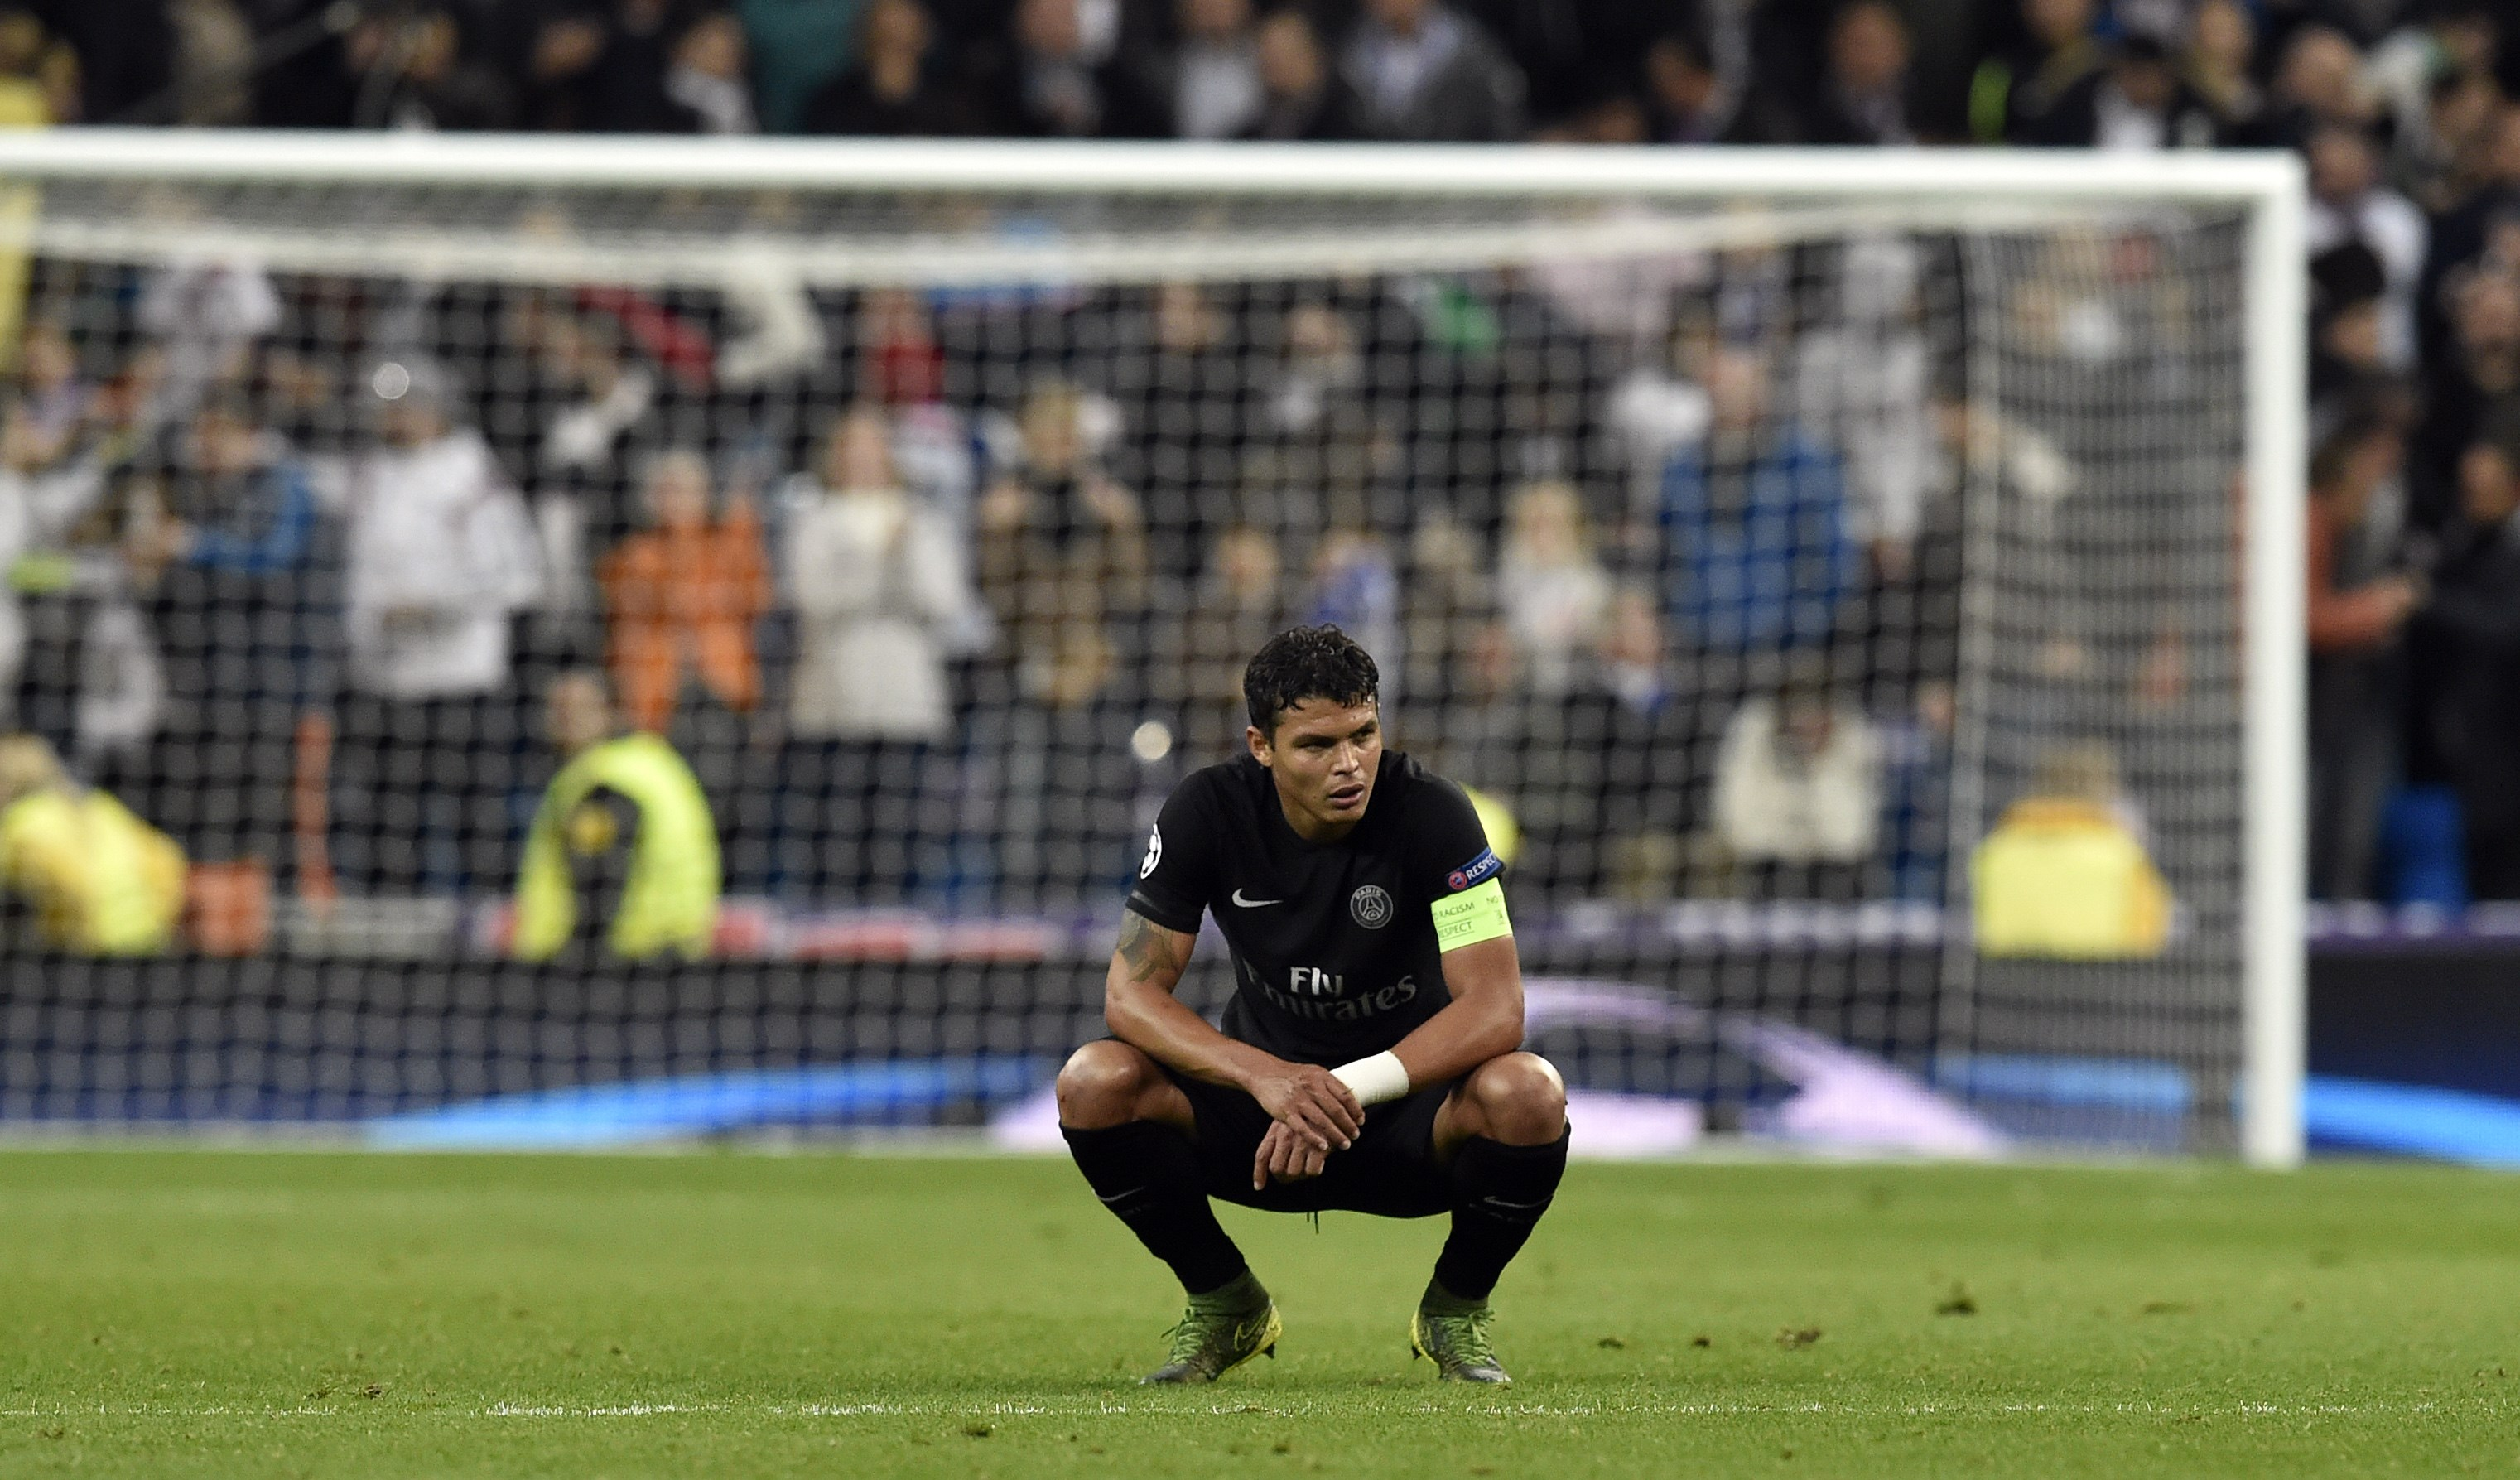 Thiago Silva's massive UCL experience will be critical for Chelsea. (Photo by Gerard Julien/AFP/Getty Images)